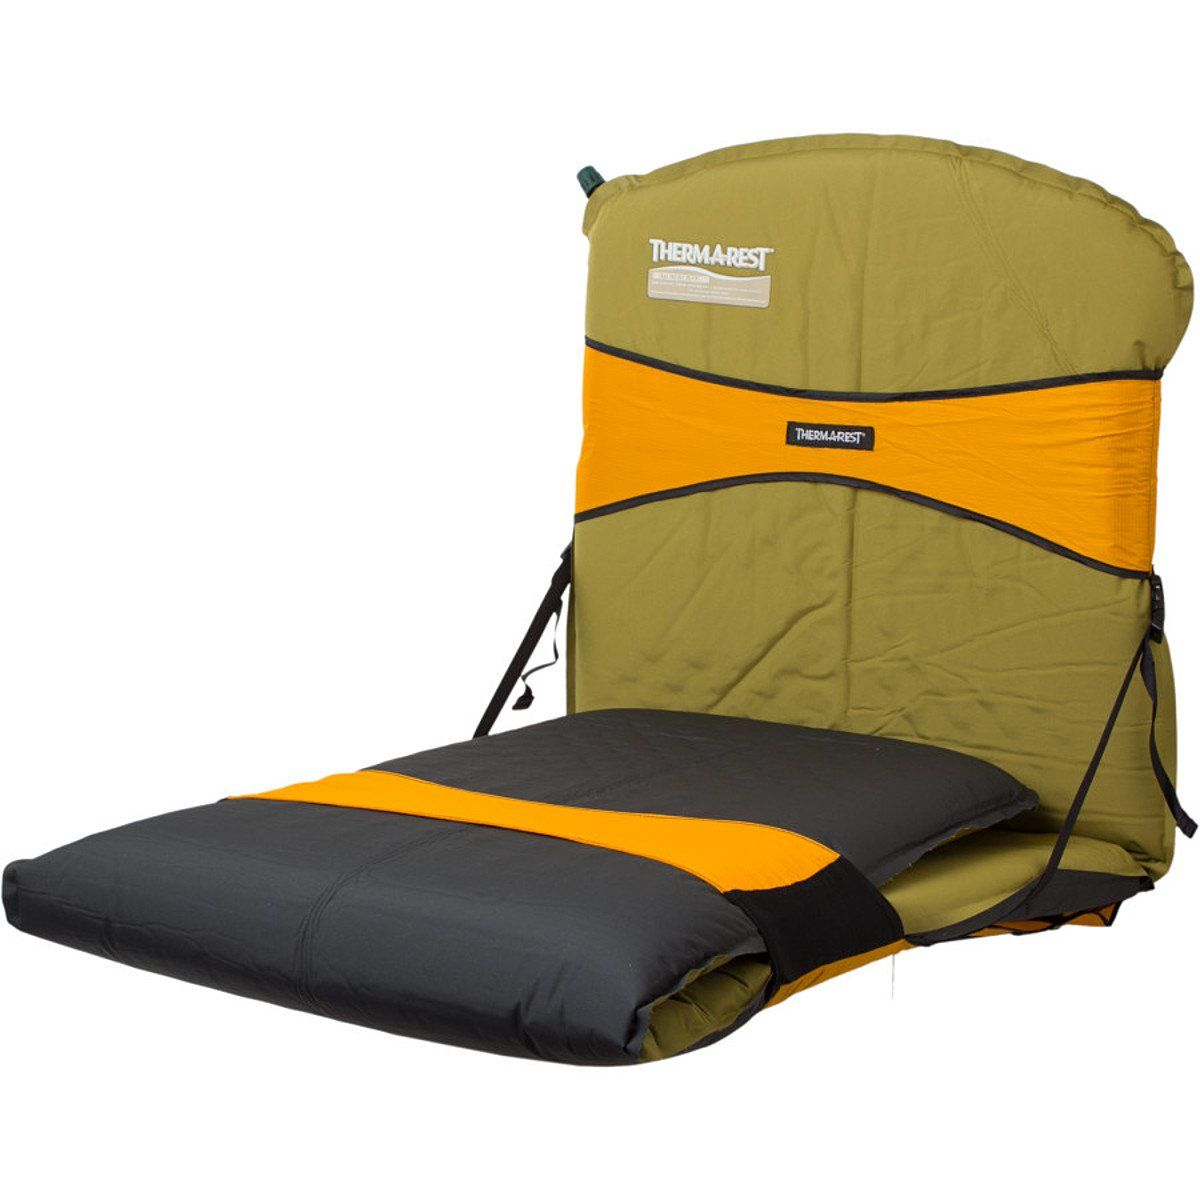 Thermarest Compact Chair Sleeve Small (20) The lightest